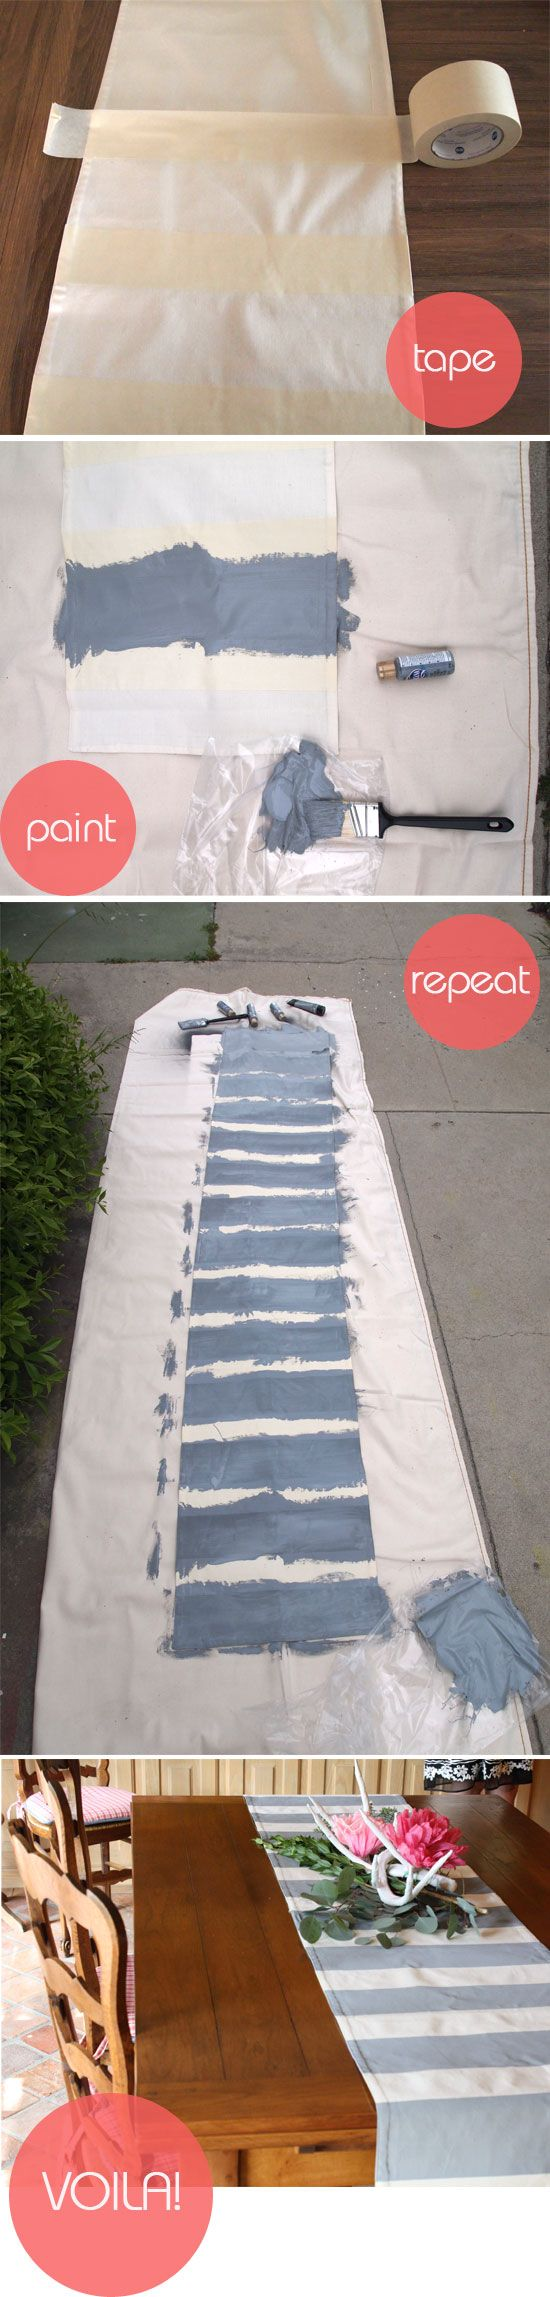 simple DIY striped runner(repin) cool idea - wonder if you need to use a particular type of paint?